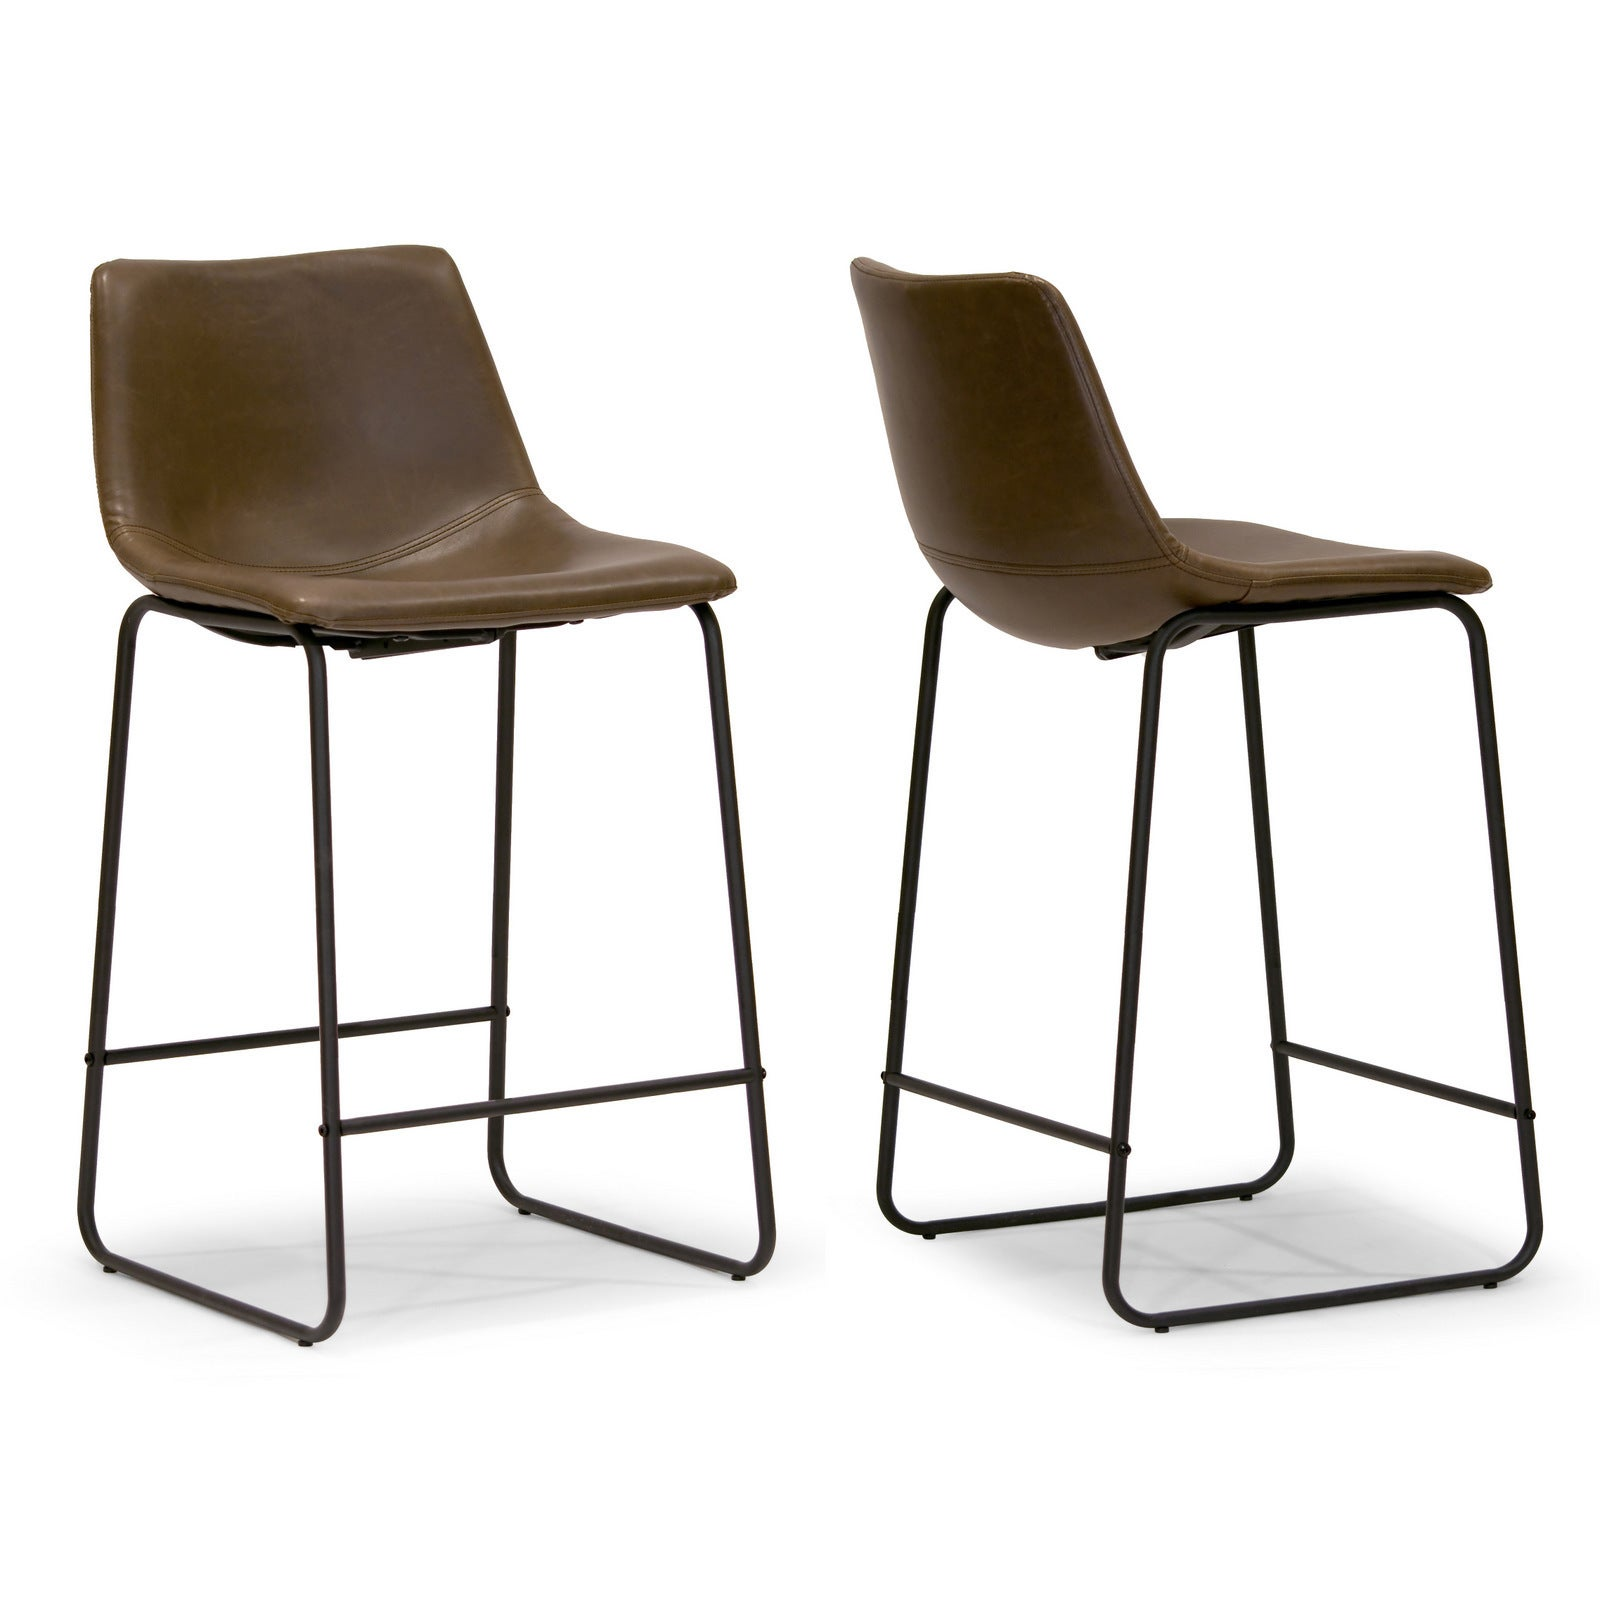 Swell Buy Counter Bar Stools Online At Overstock Our Best Machost Co Dining Chair Design Ideas Machostcouk